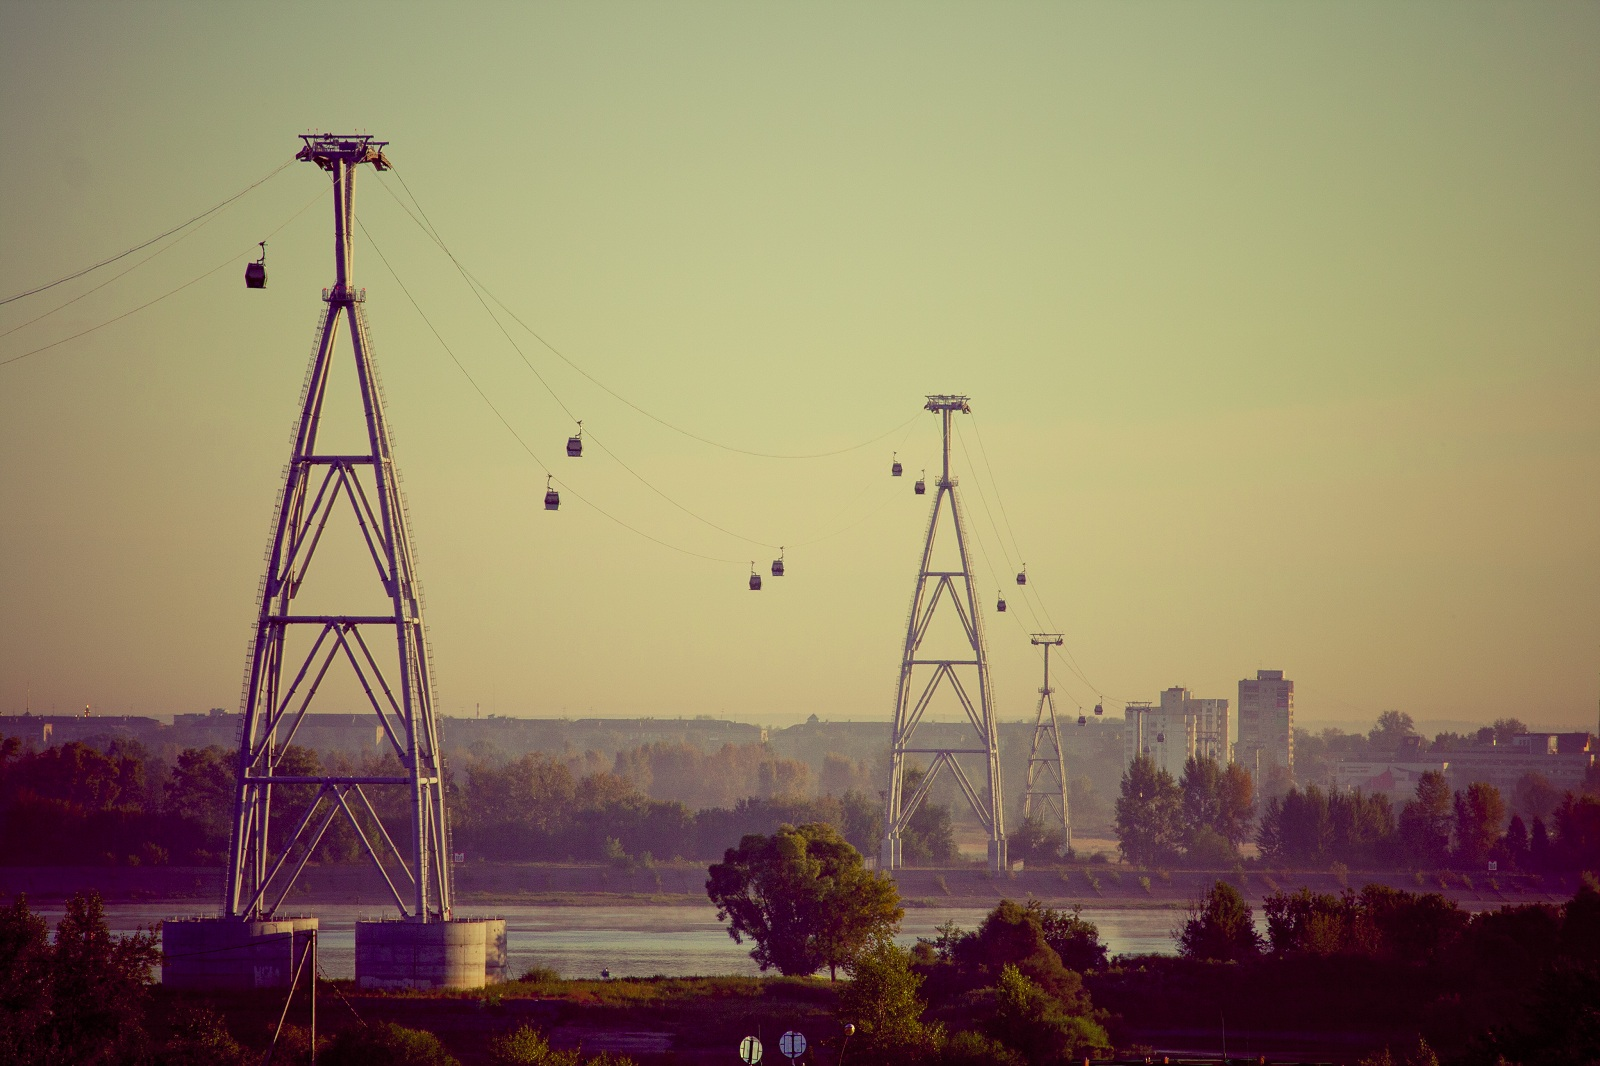 Nizhny_Novgorod_Cableway_a_commuter_cableway_that_connects_the_city_with_its_satellite_Bor_The_ride_peaks_at_82m_and_has_a_861-meter_between_the_supports_the_longest_span_in_Europe.jpg